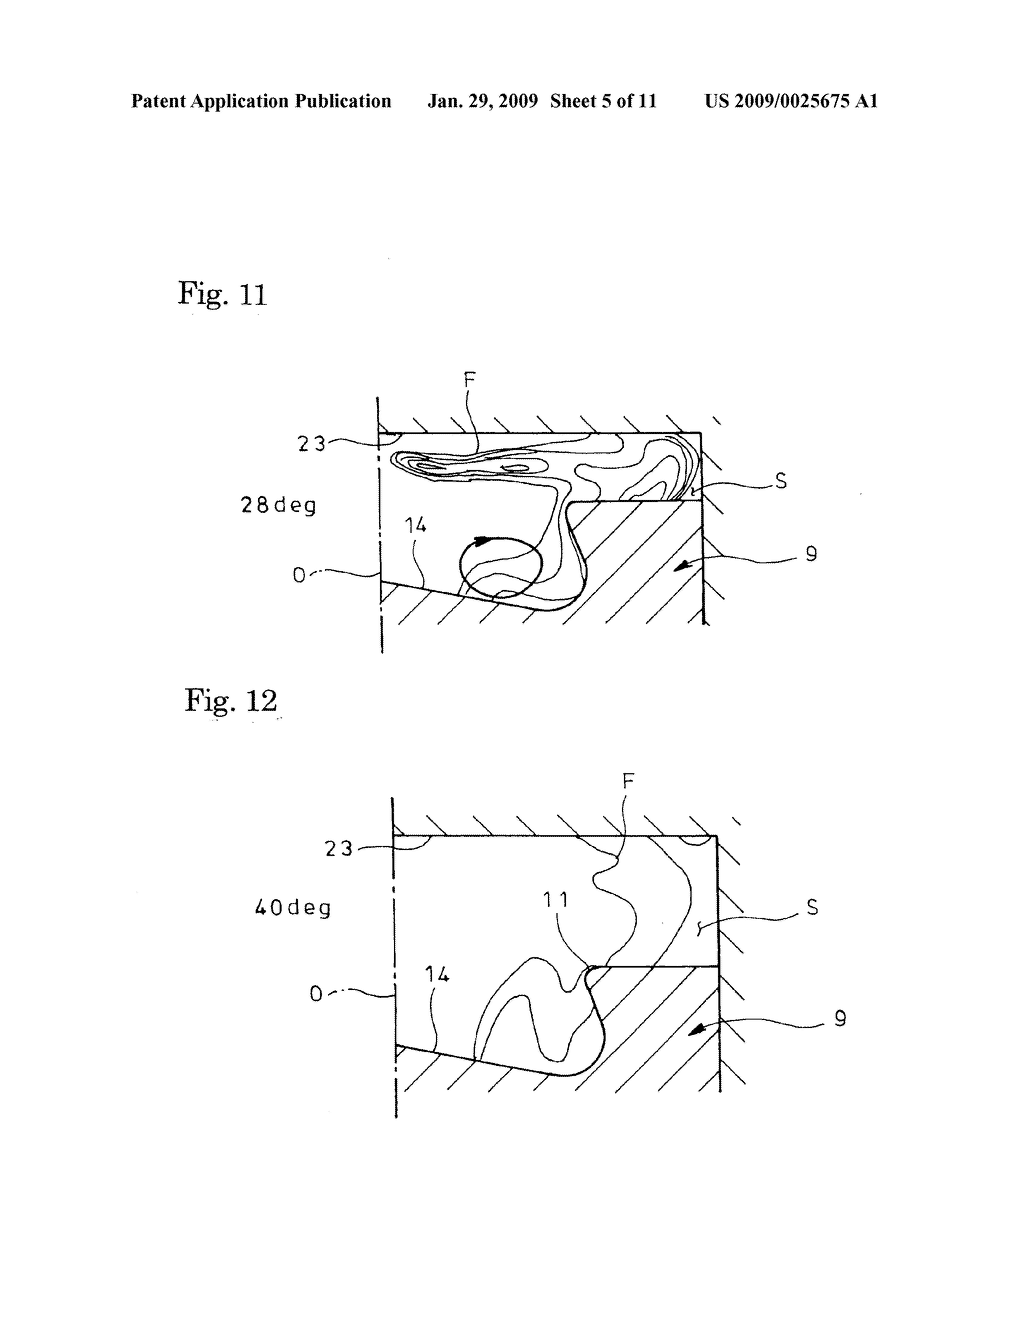 Combustion Chamber Structure For Direct Injection Diesel Engine Injected Diagram Schematic And Image 06